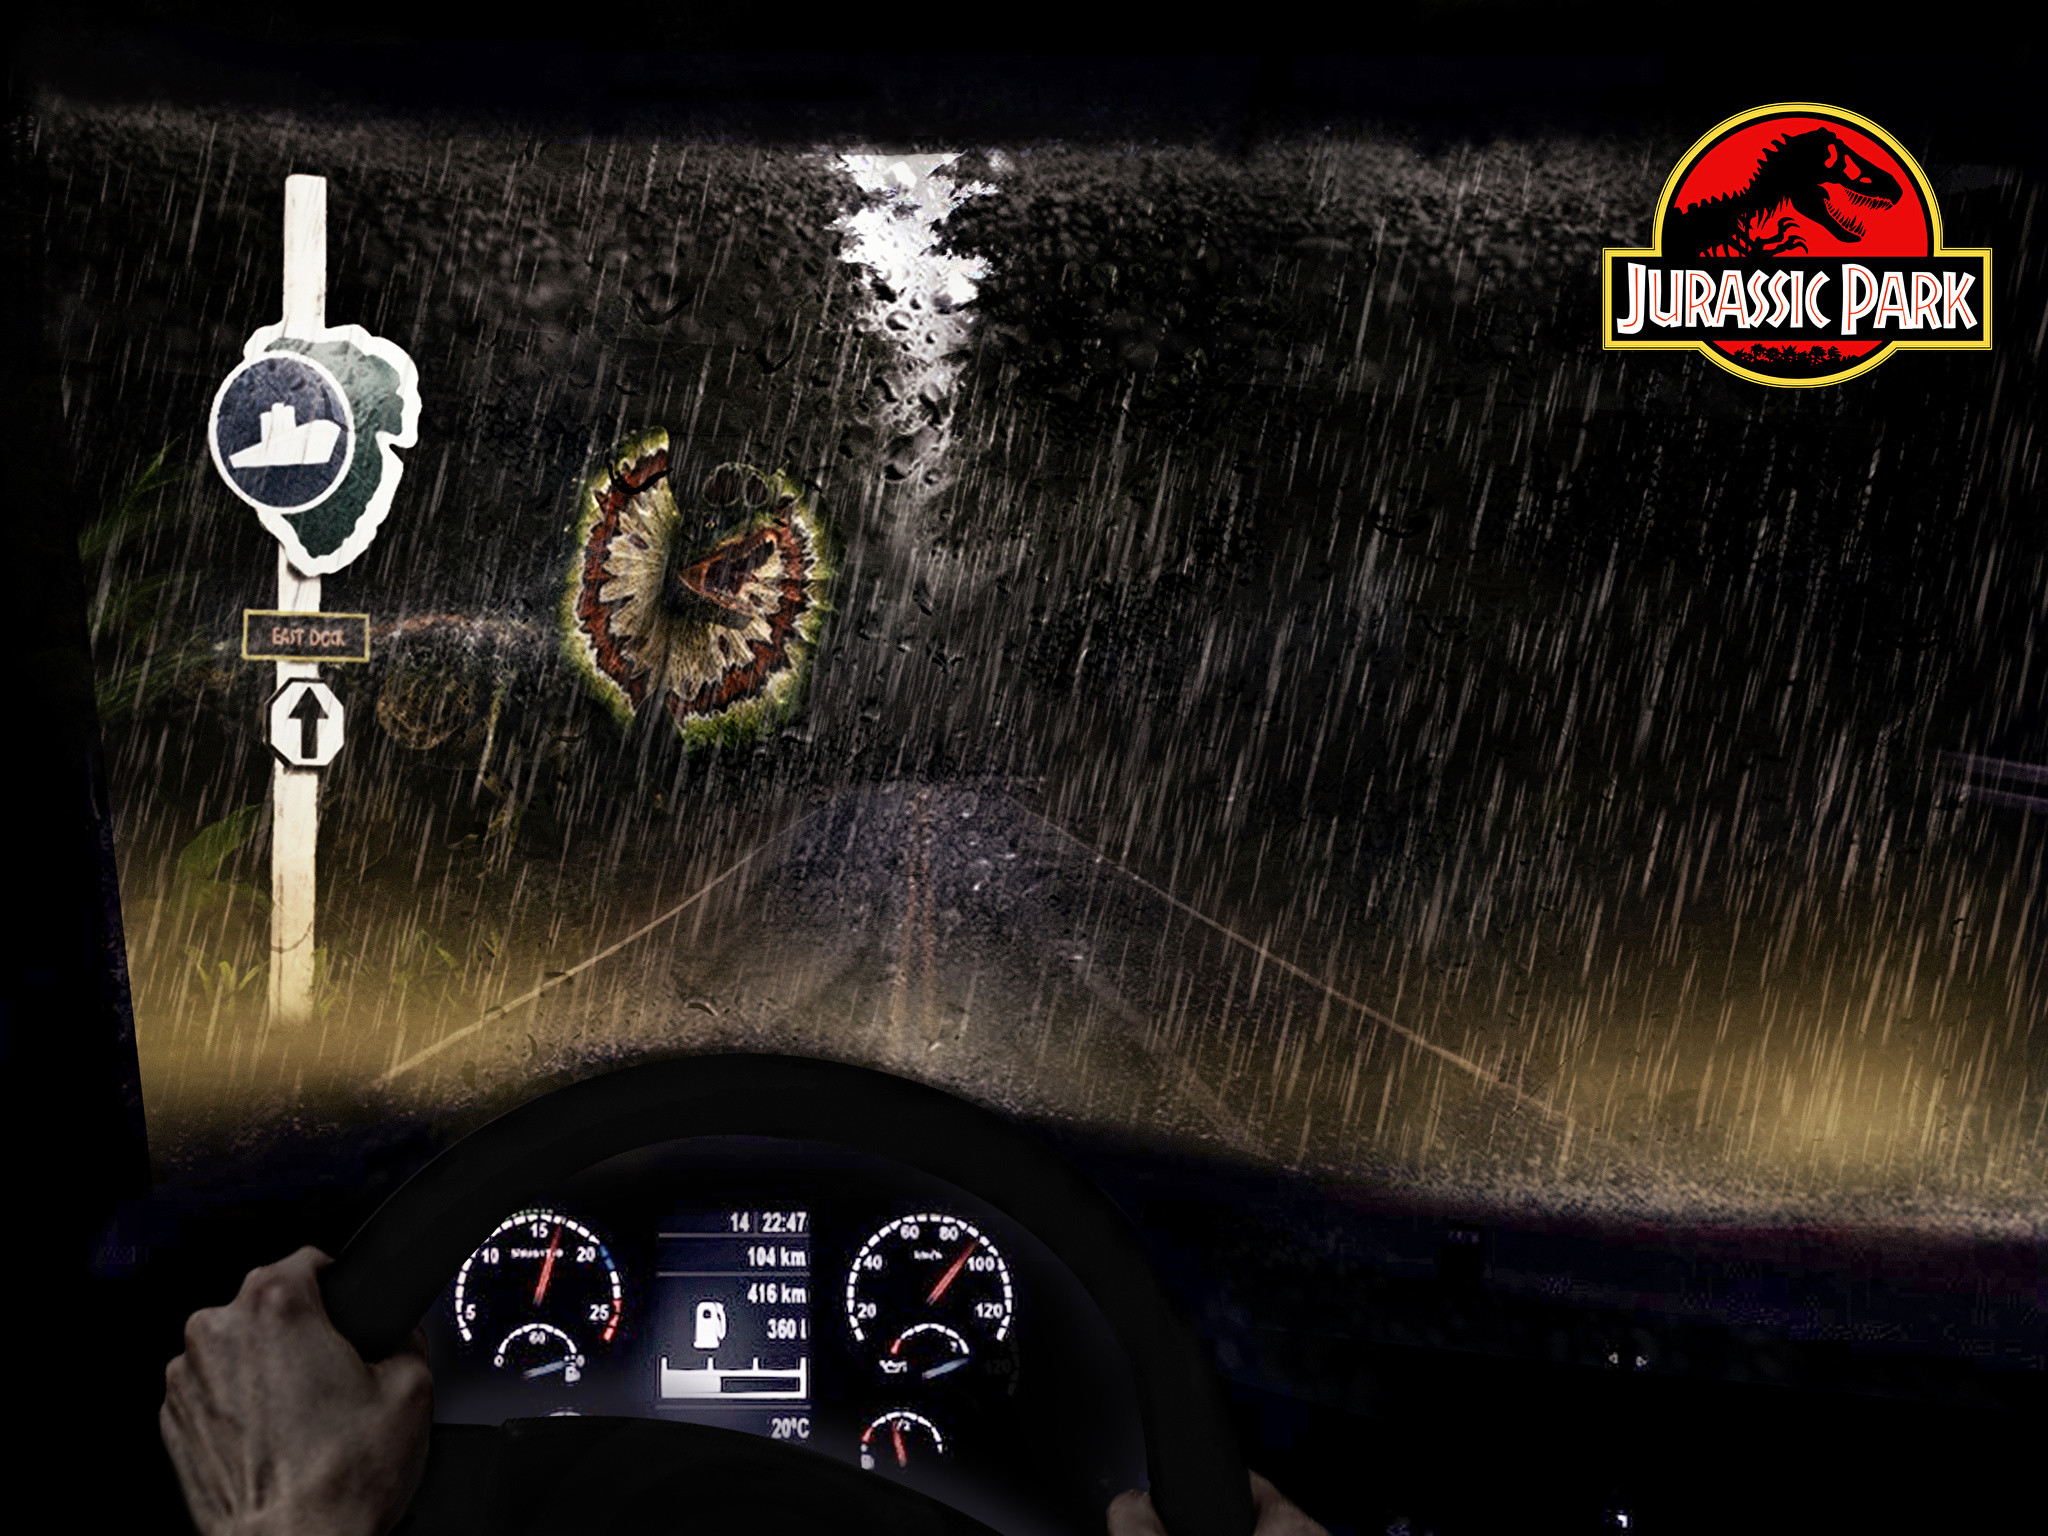 Jurassic Park Wallpapers (71+ Images